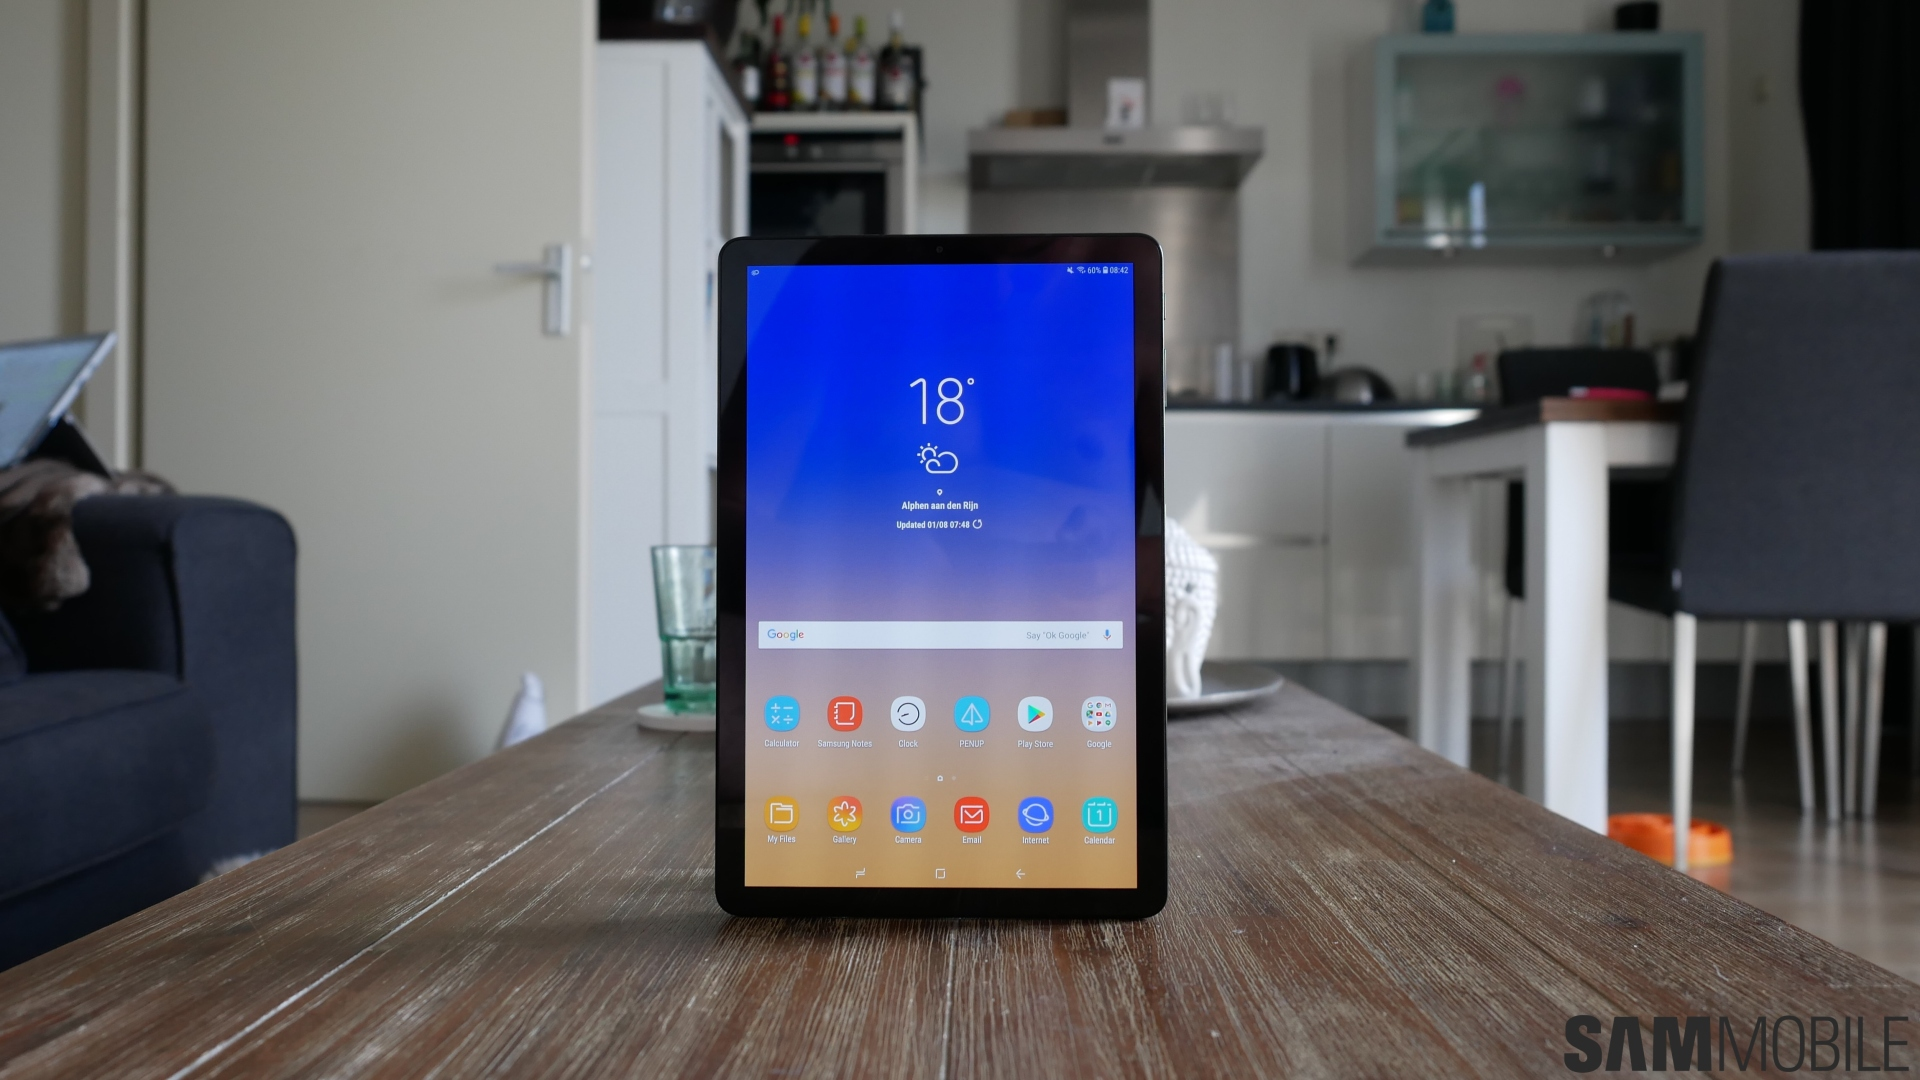 Samsung Galaxy Tab S4 hands-on impressions